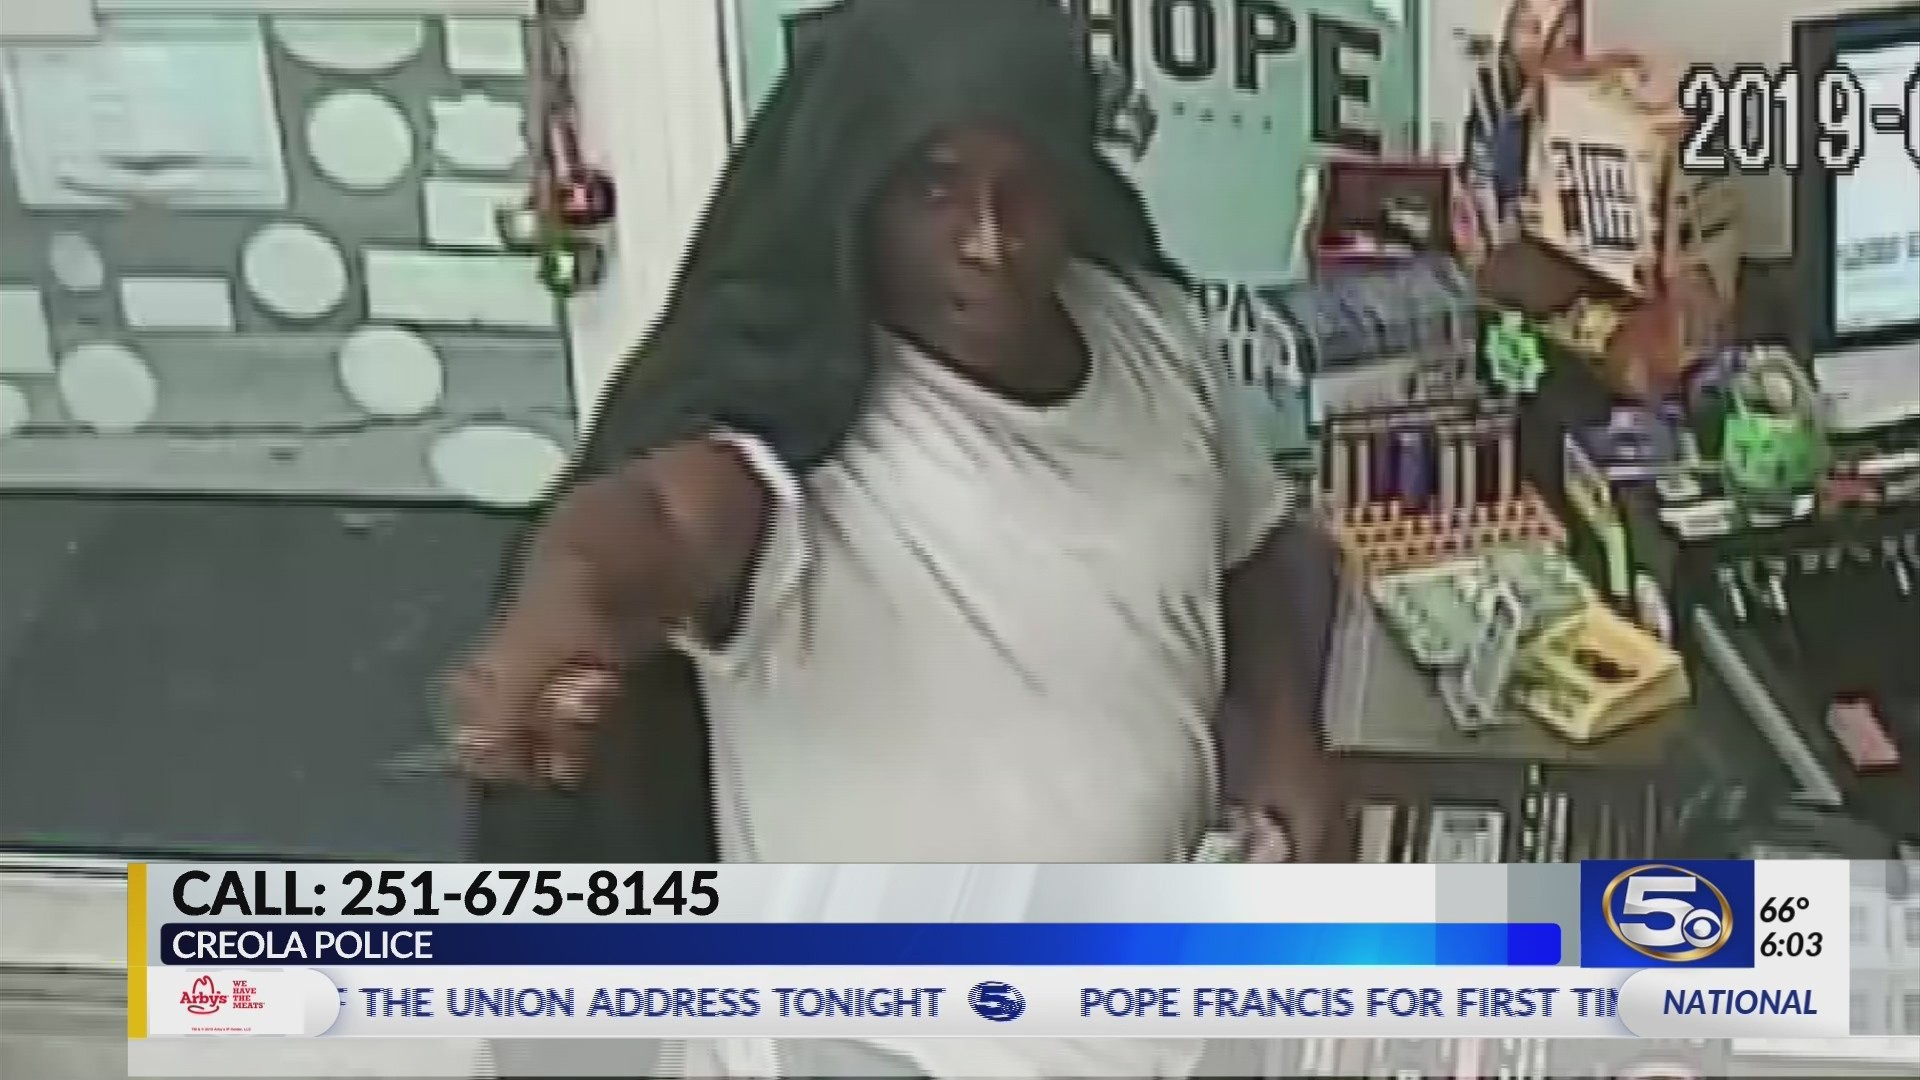 VIDEO: Creola Police seek help identifying robbery suspect